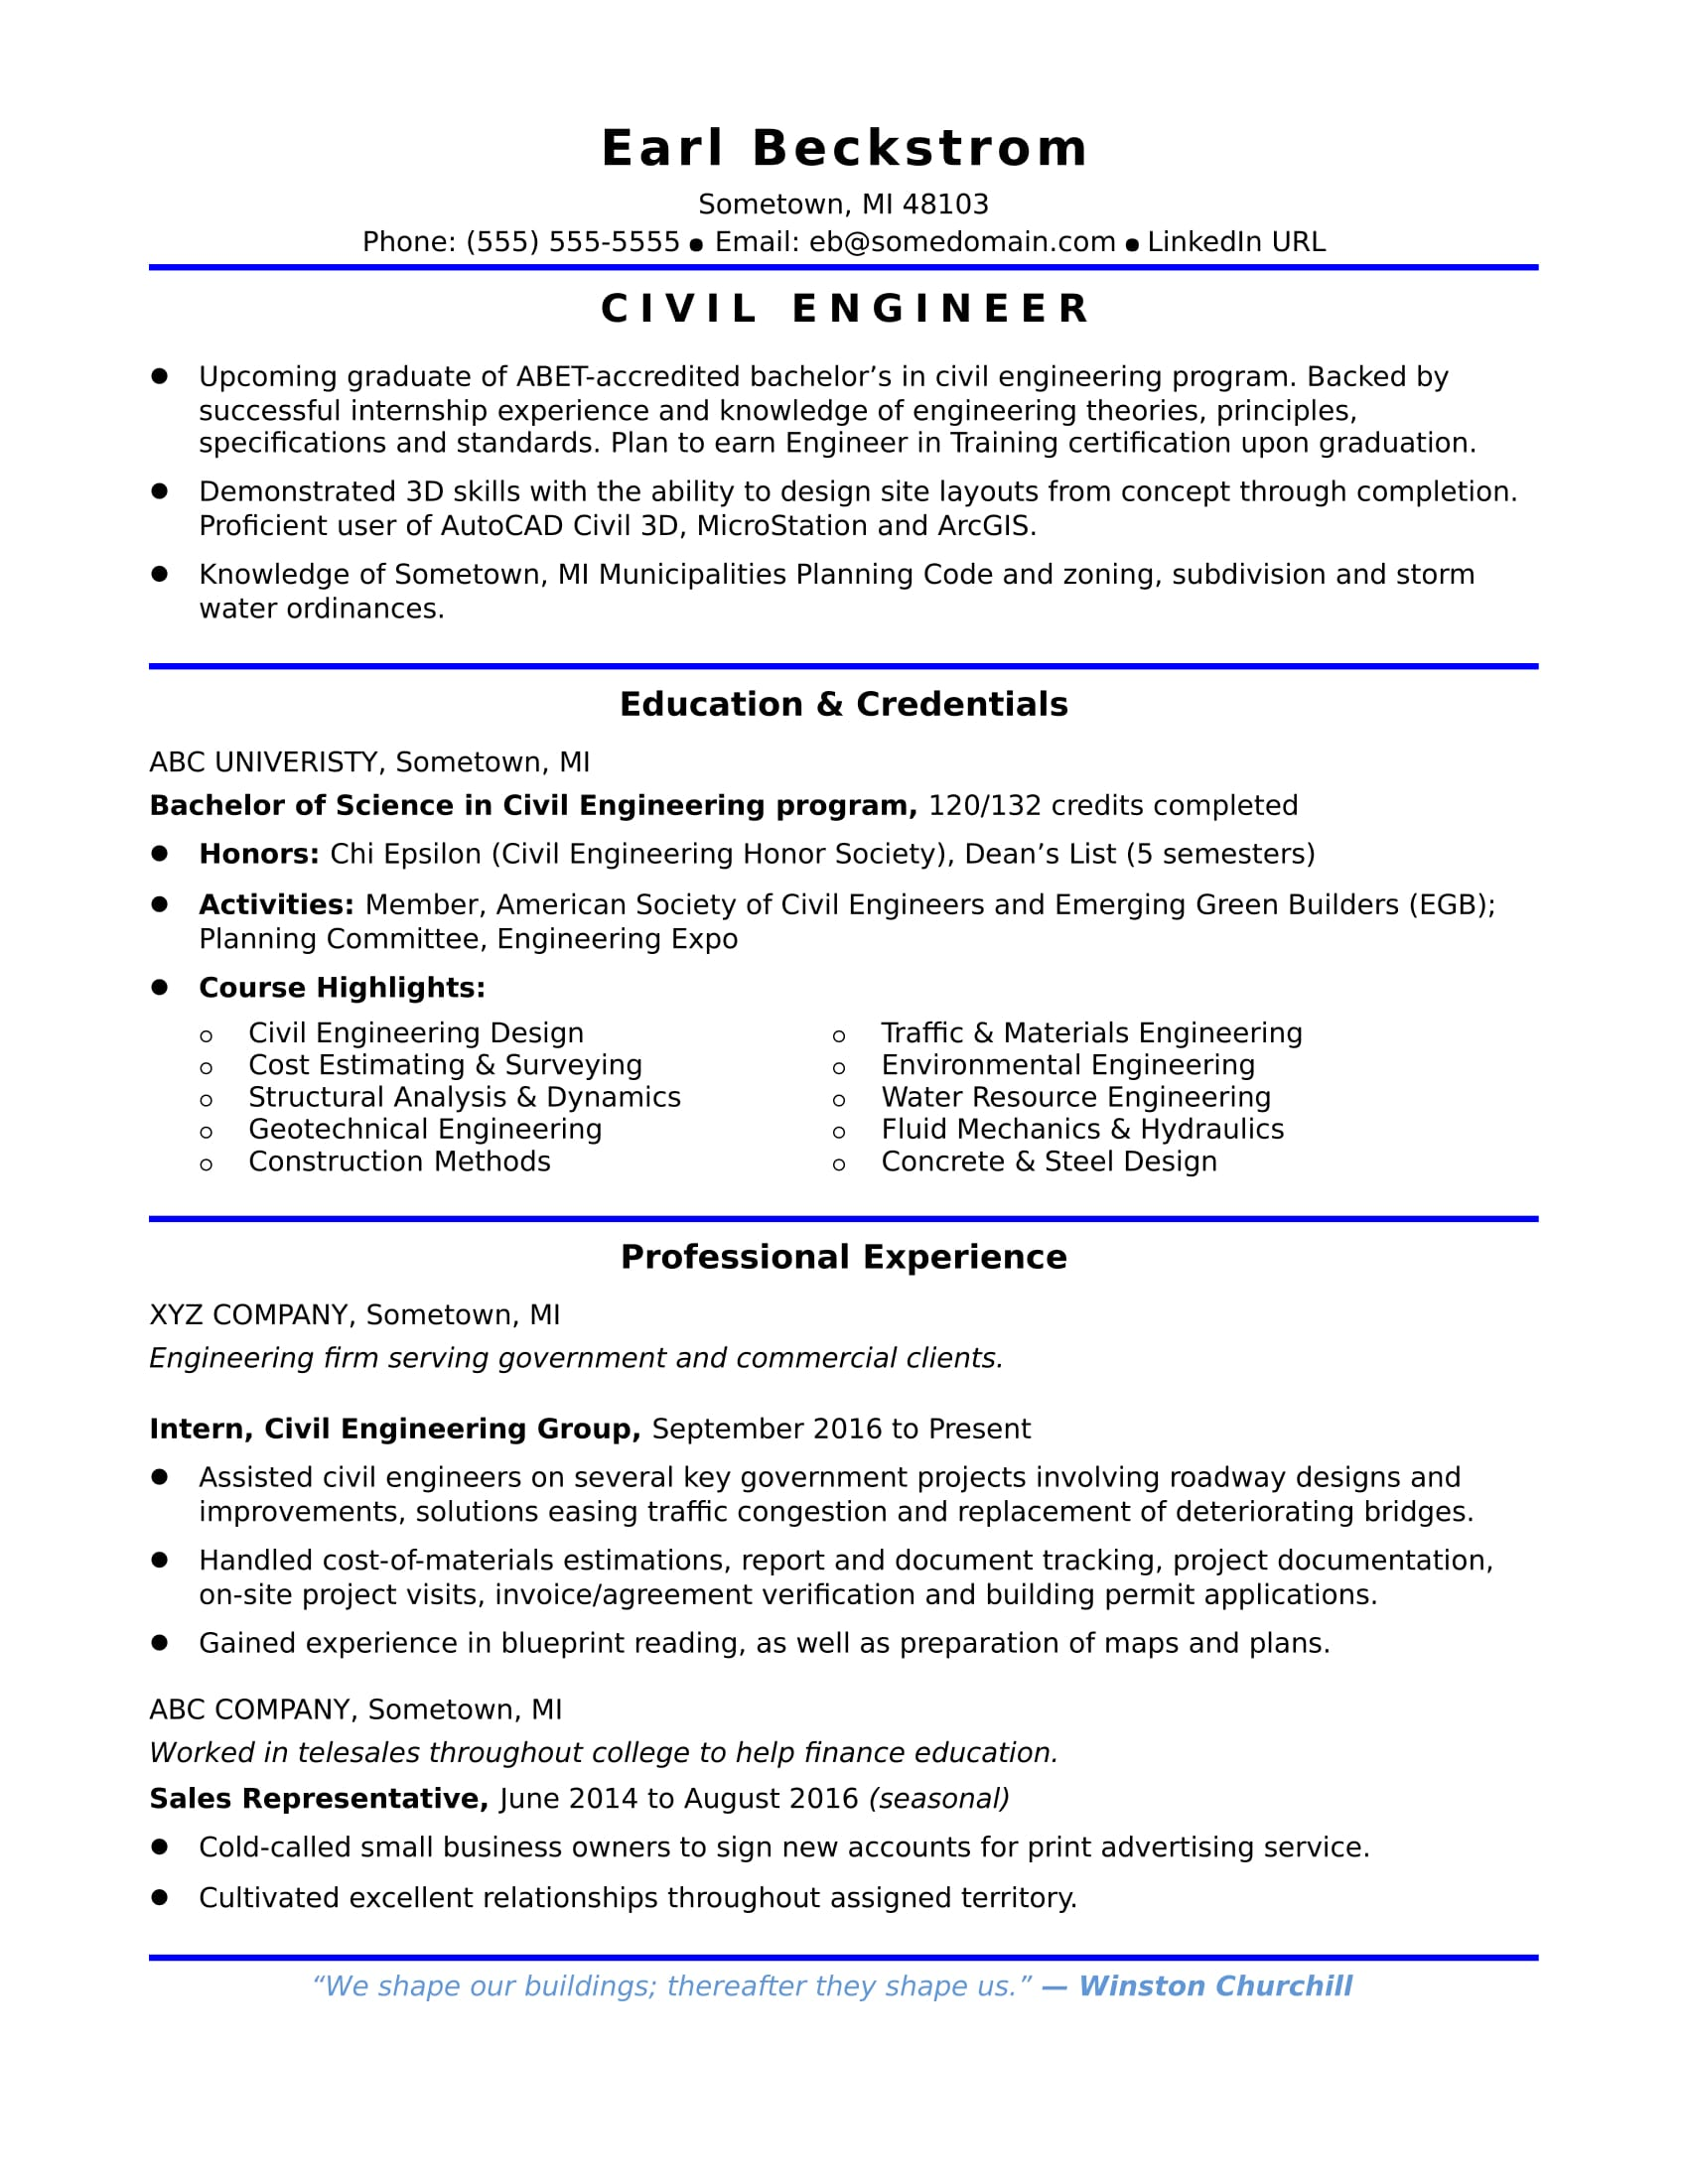 Sample Resume For An Entry Level Civil Engineer  Resume Design Service